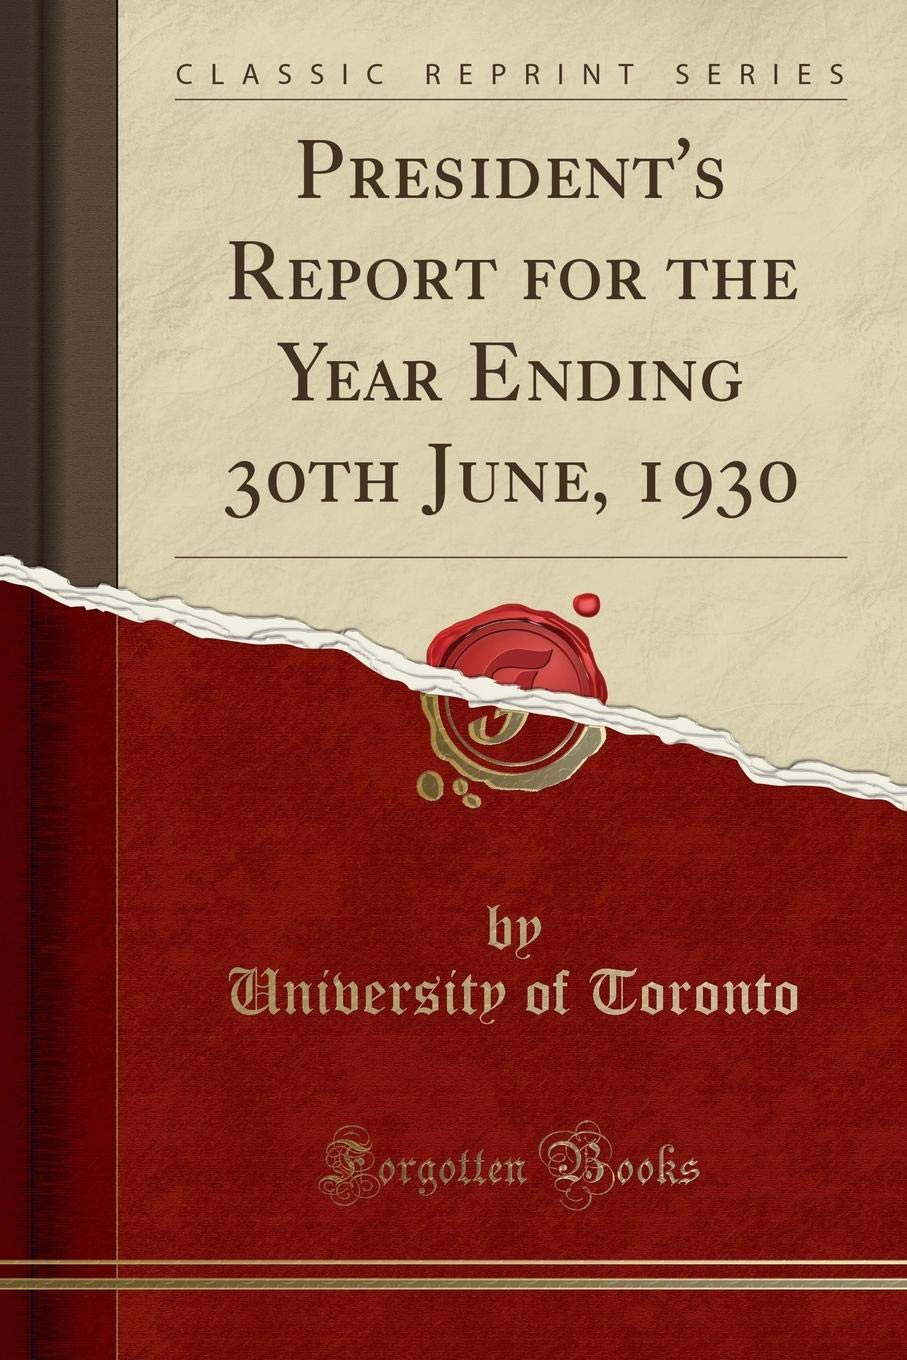 President's Report for the Year Ending 30th June, 1930 (Classic Reprint) ebook